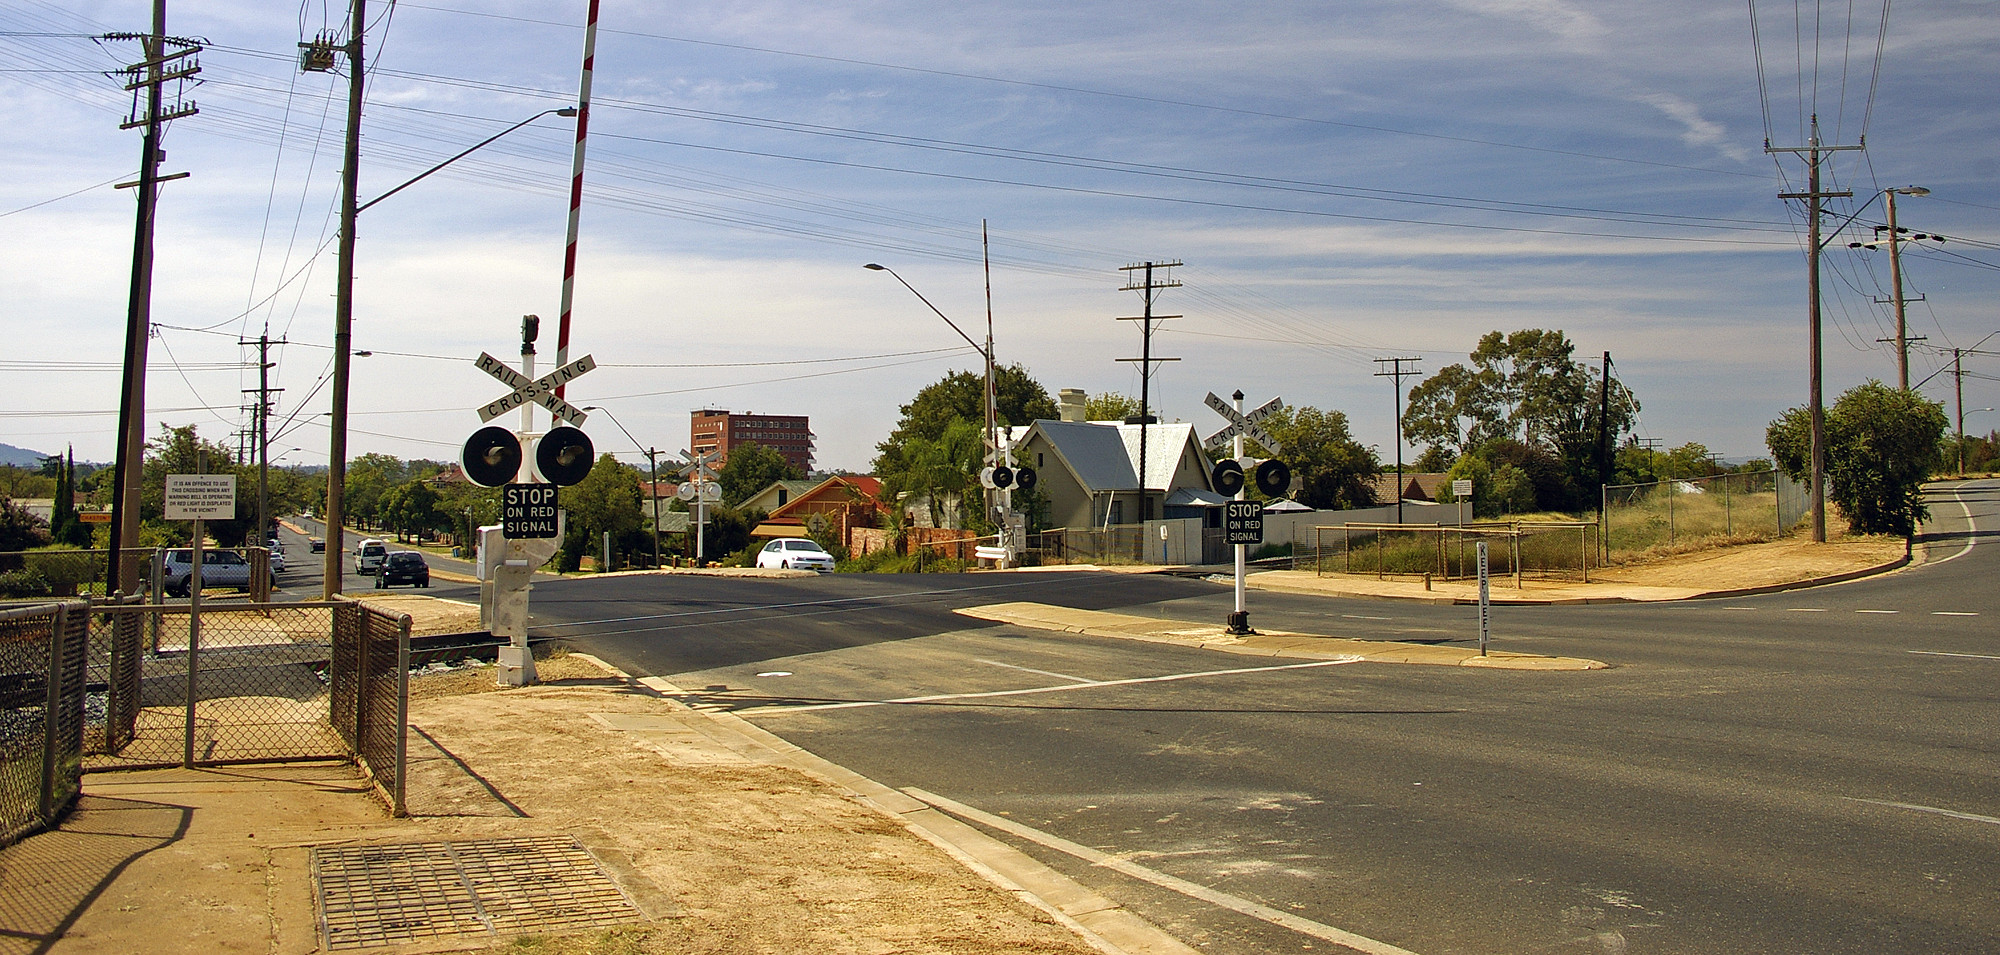 https://commons.wikimedia.org/wiki/Category:Bourke_Street,_Wagga_Wagga